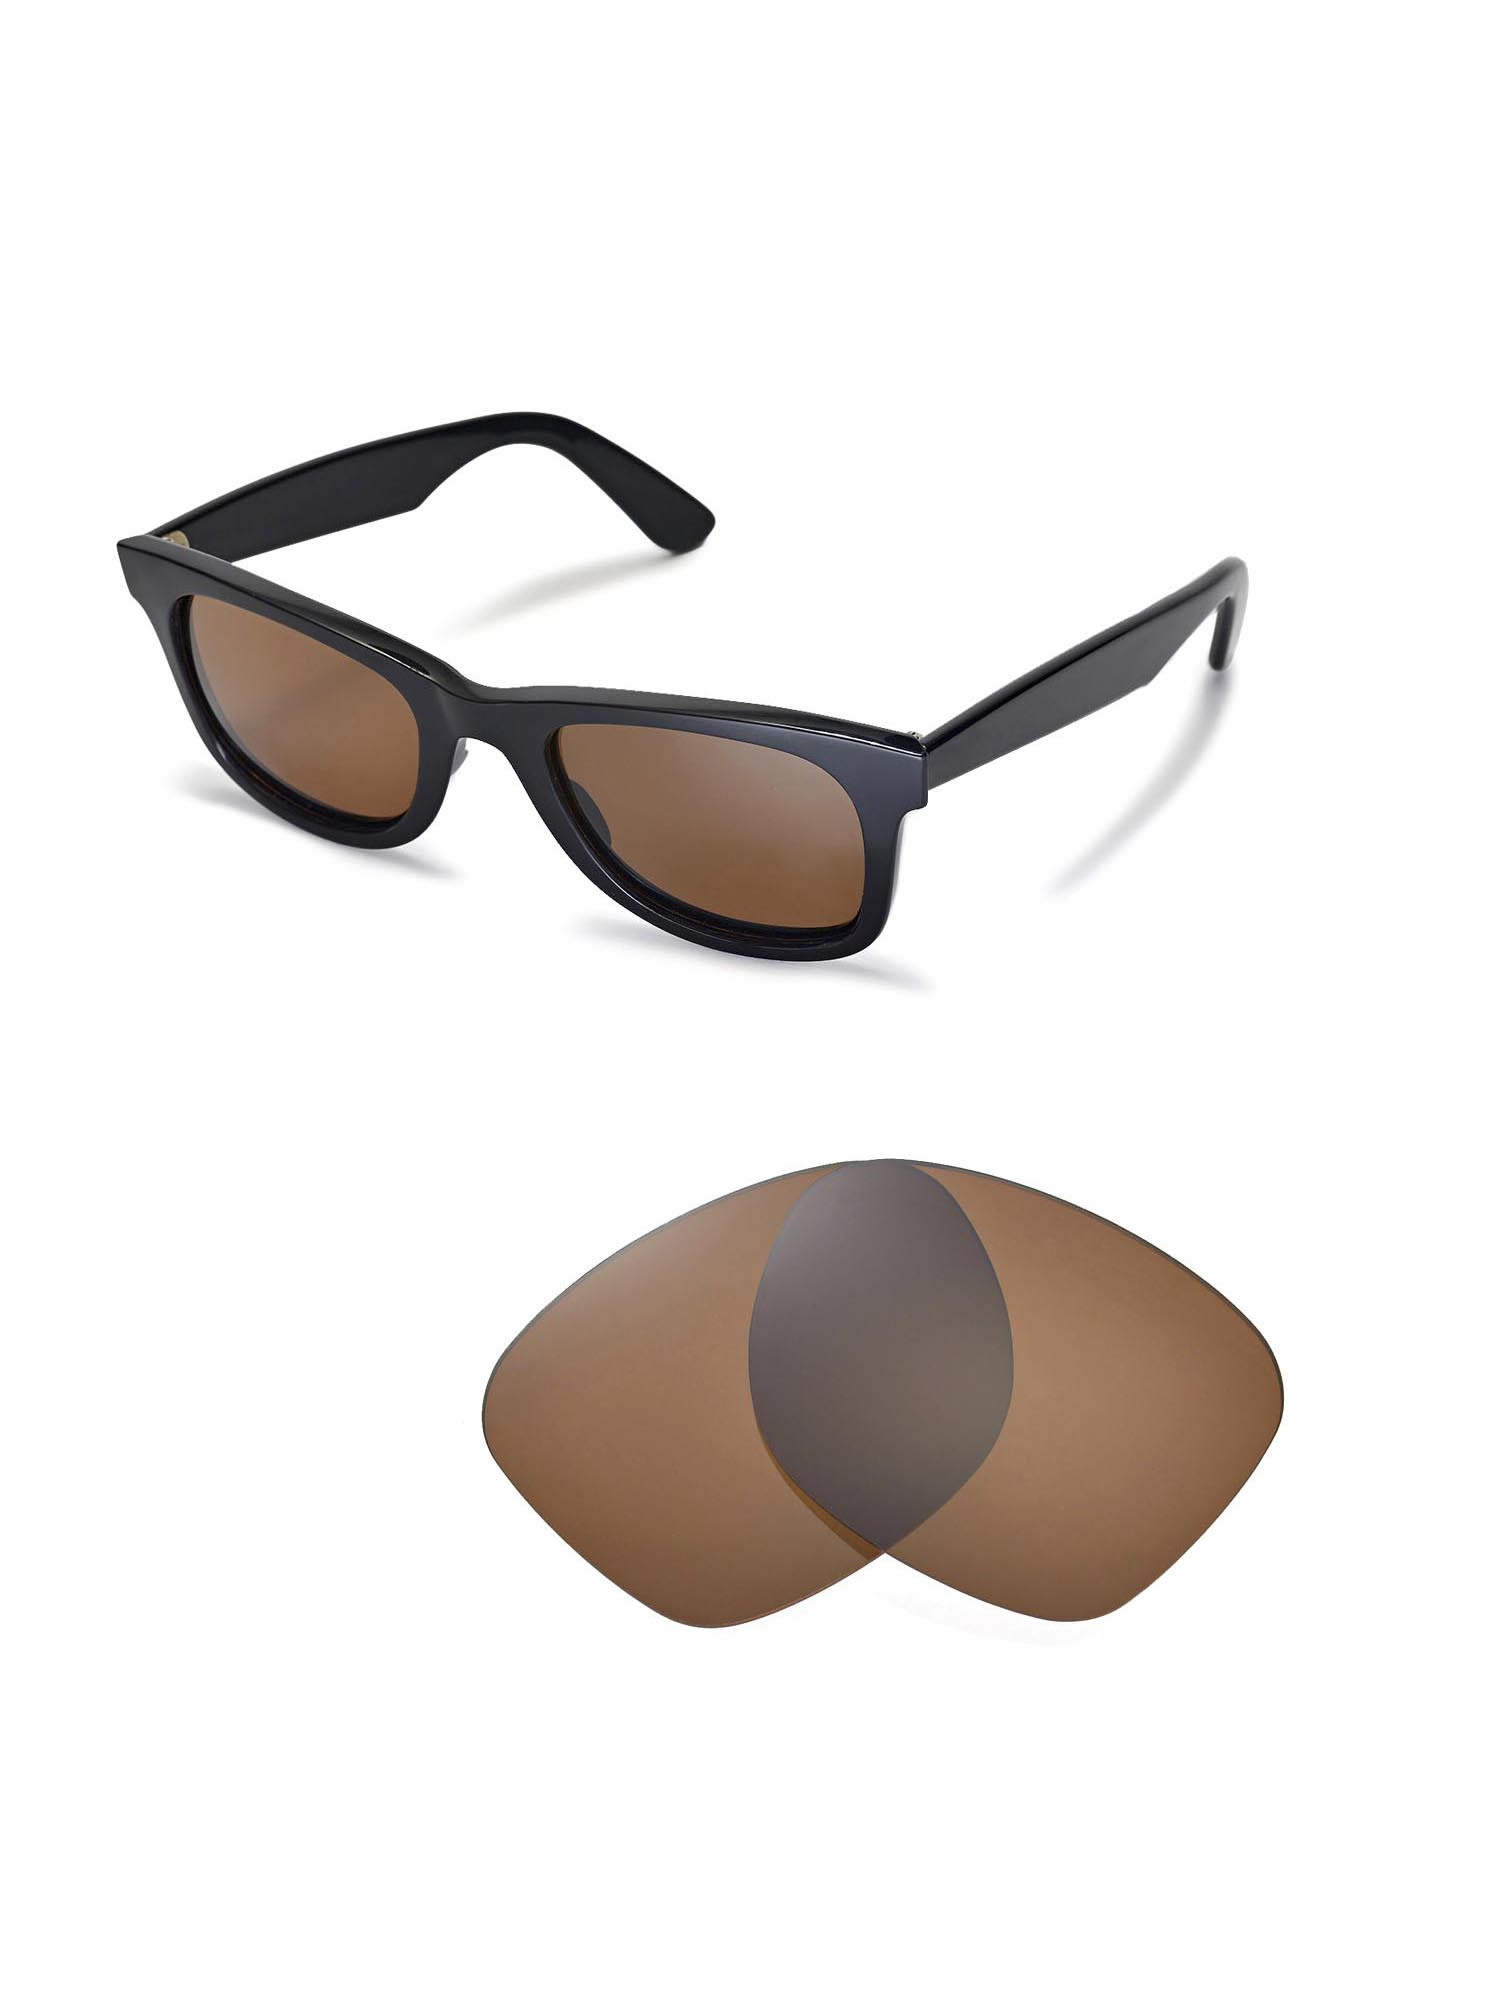 d3848539081591 Walleva Brown Polarized Replacement Lenses for Ray-Ban Wayfarer RB2140 50mm  Sunglasses - Walmart.com